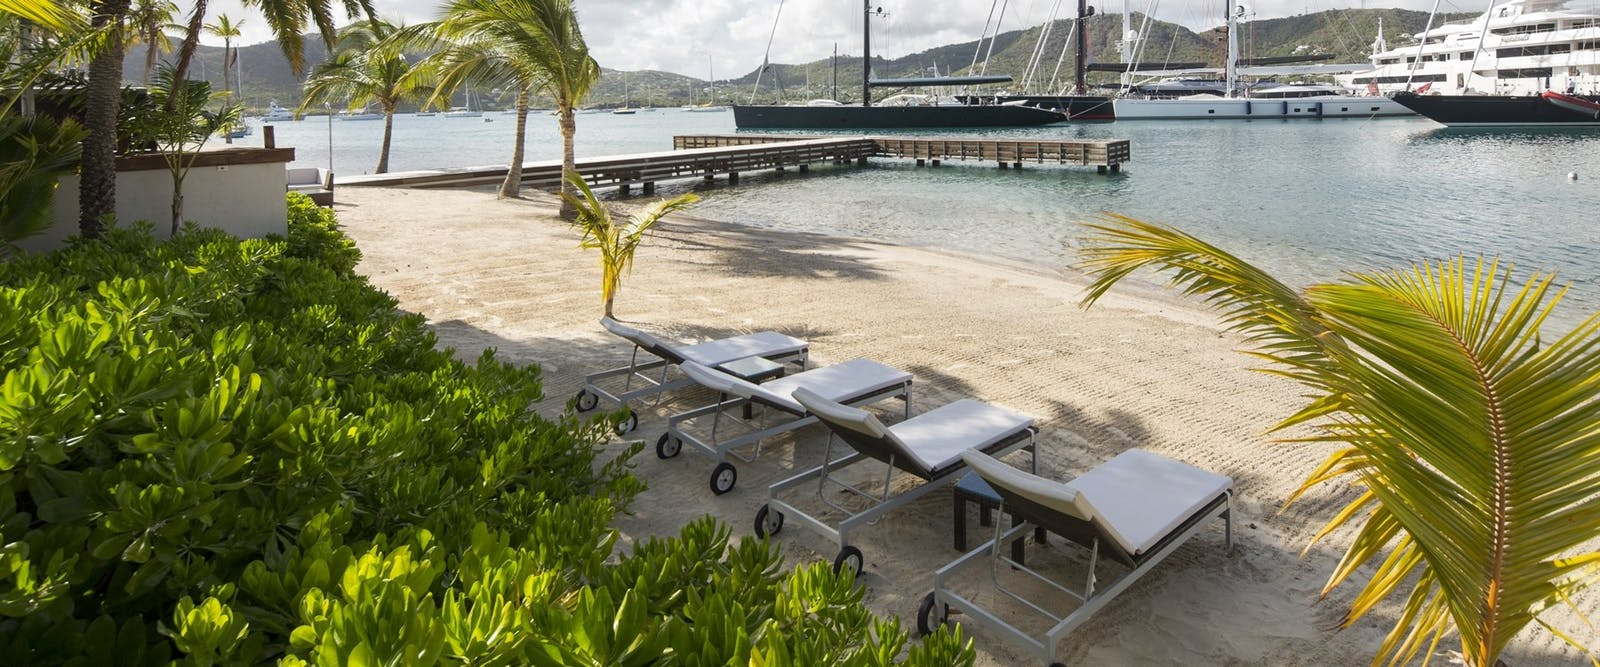 Sun Loungers Along the Beach at South Point, Antigua